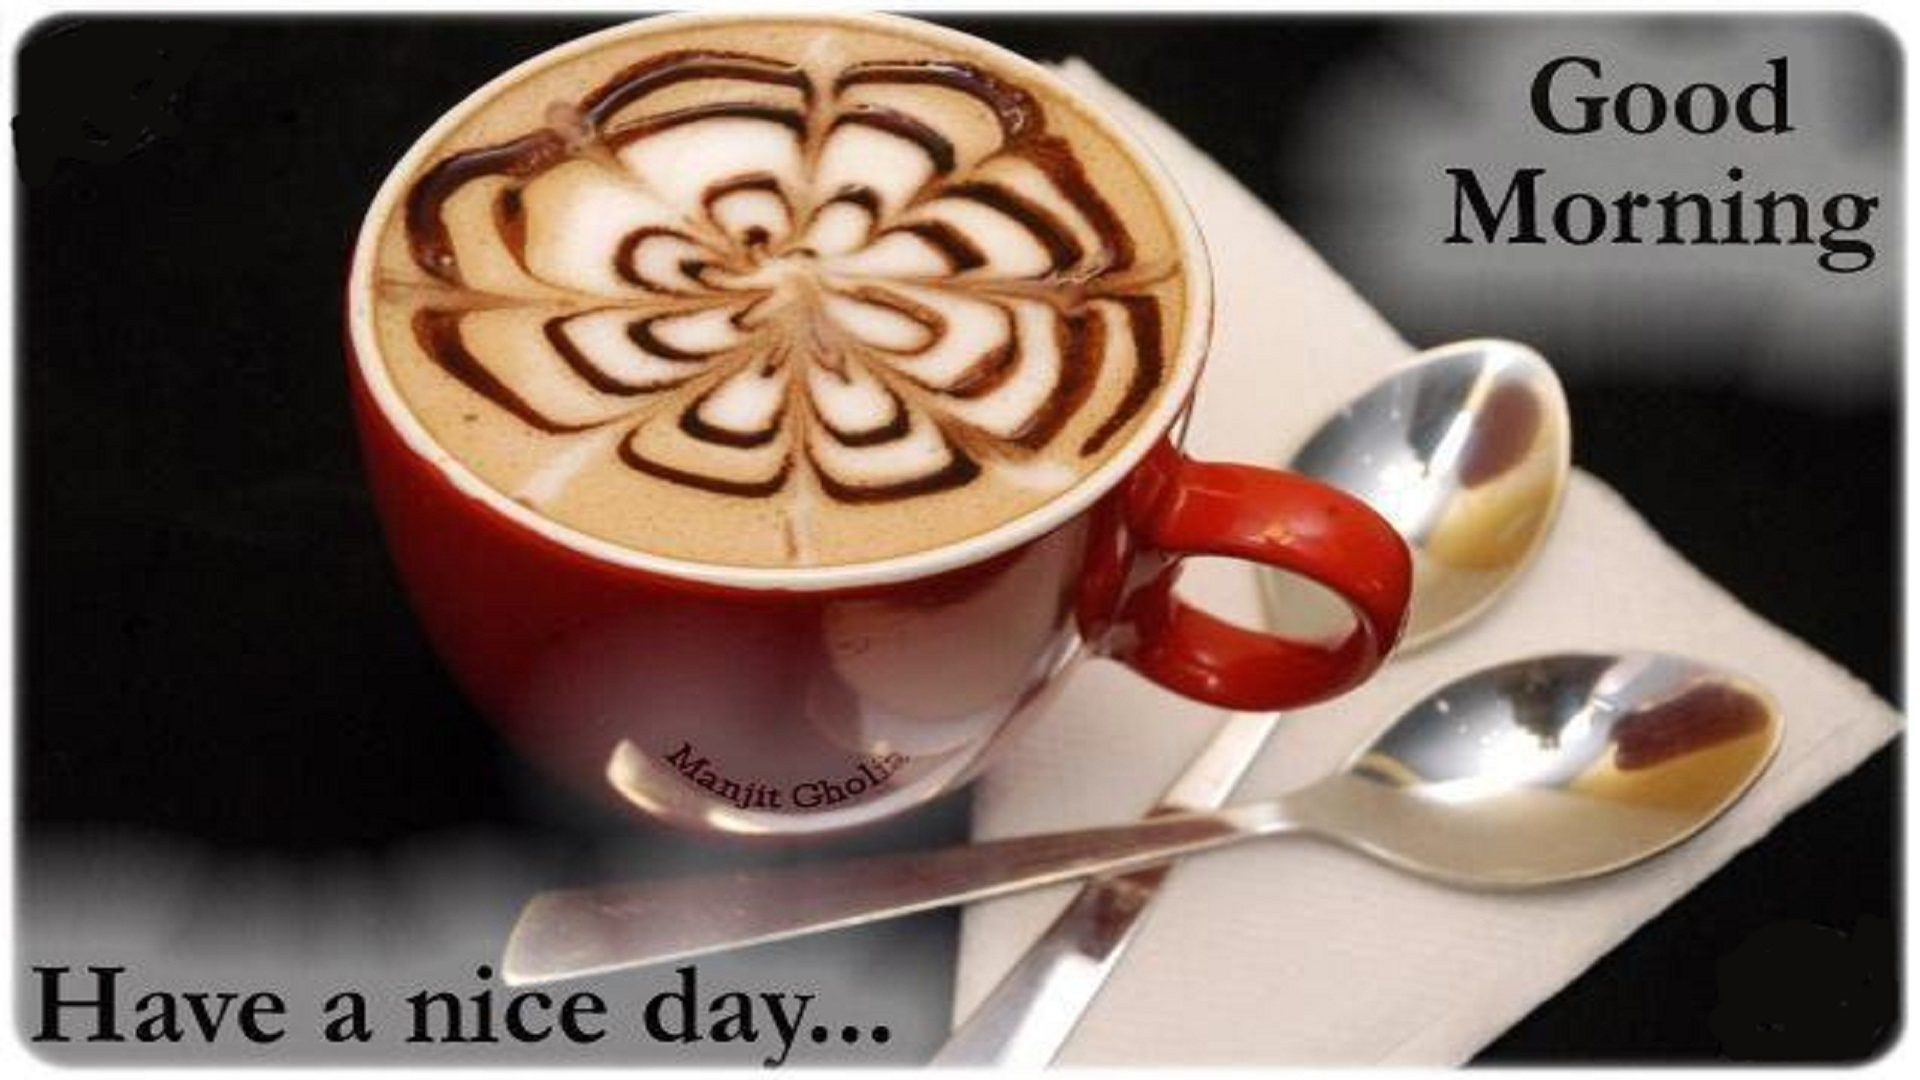 Good Morning Have A Nice Day Wallpapers